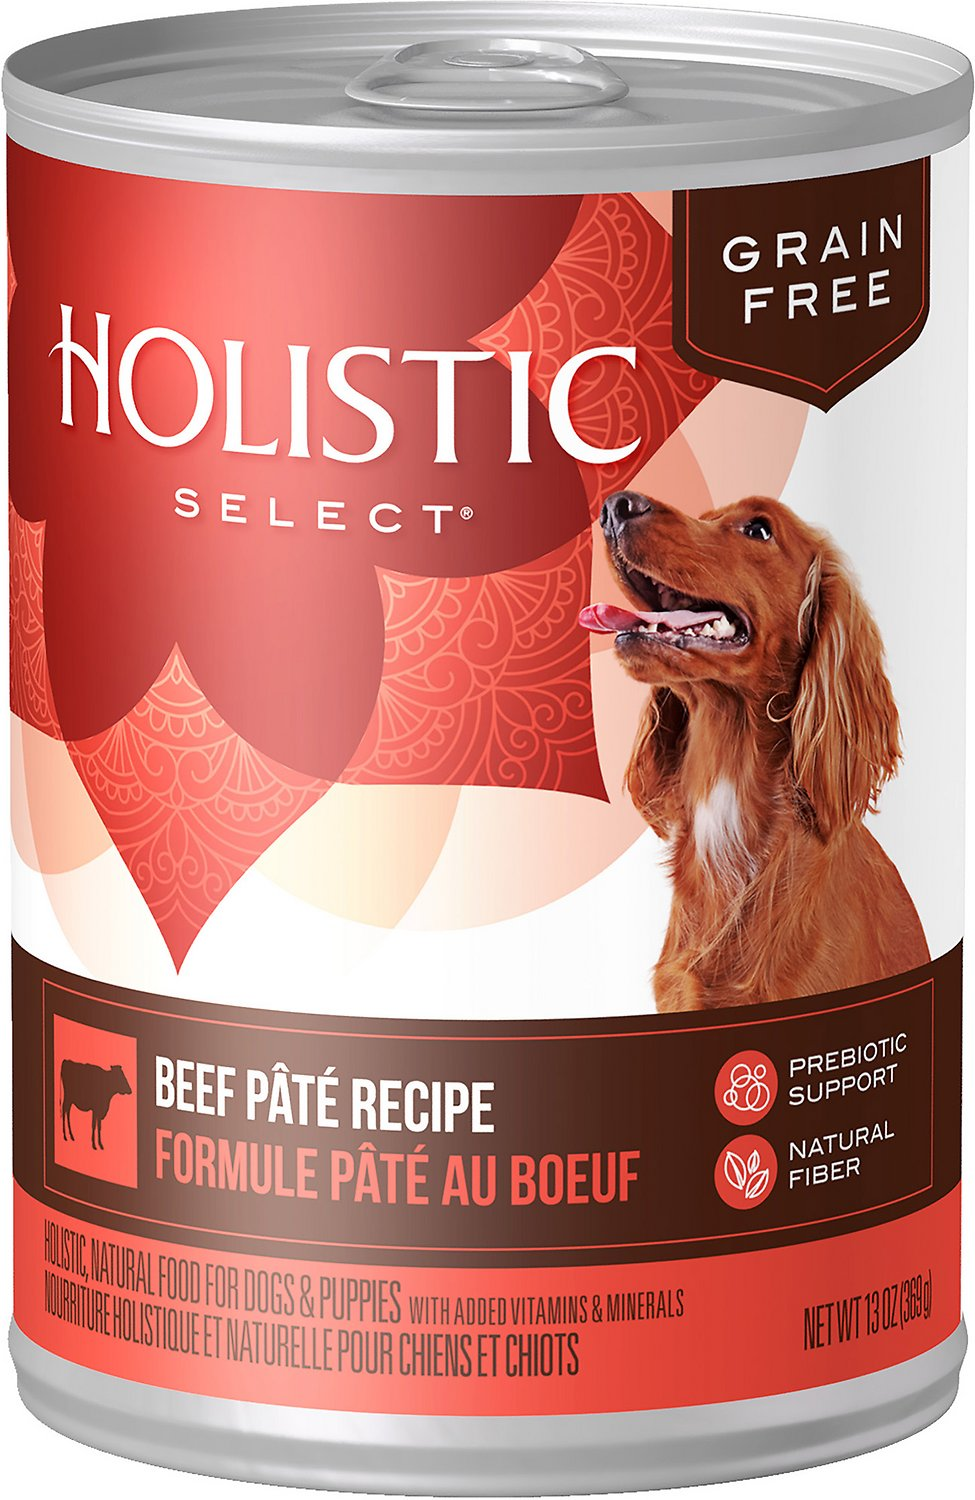 Holistic Select Beef Pate Recipe Grain-Free Canned Dog Food, 13-oz